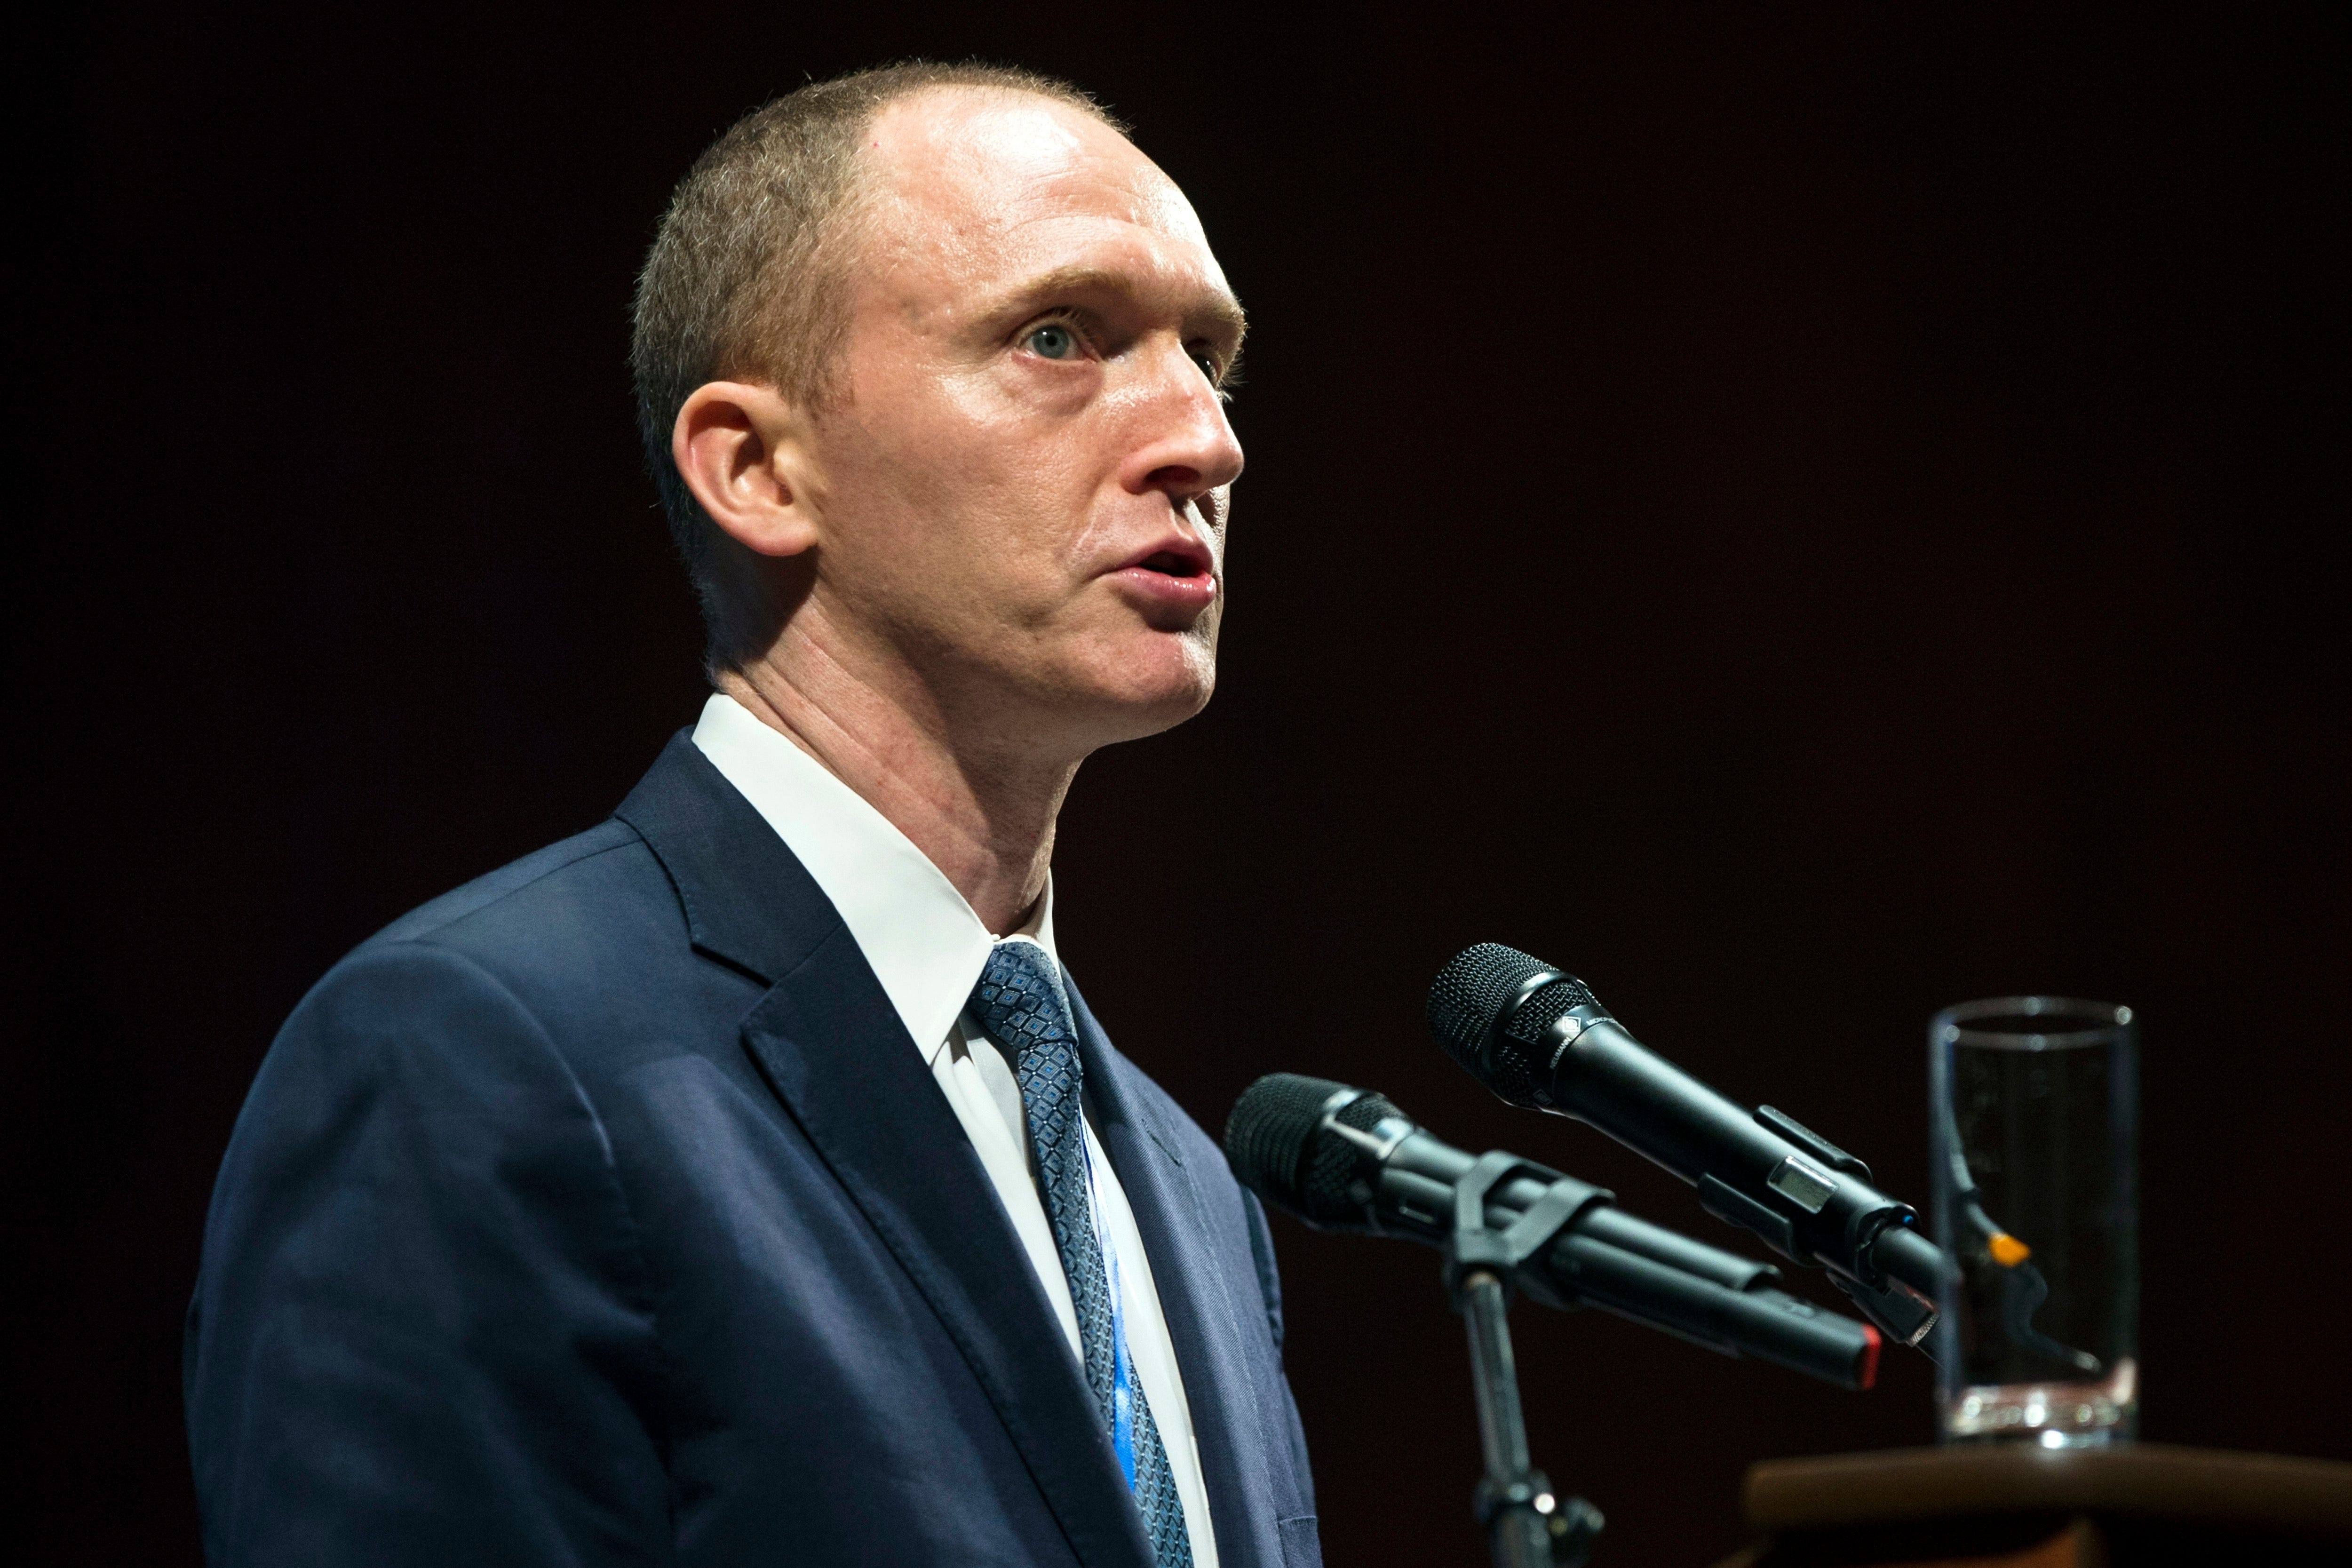 Ex-Trump campaign adviser Carter Page sues FBI, Comey, McCabe and others for $75M over Russia probe surveillance